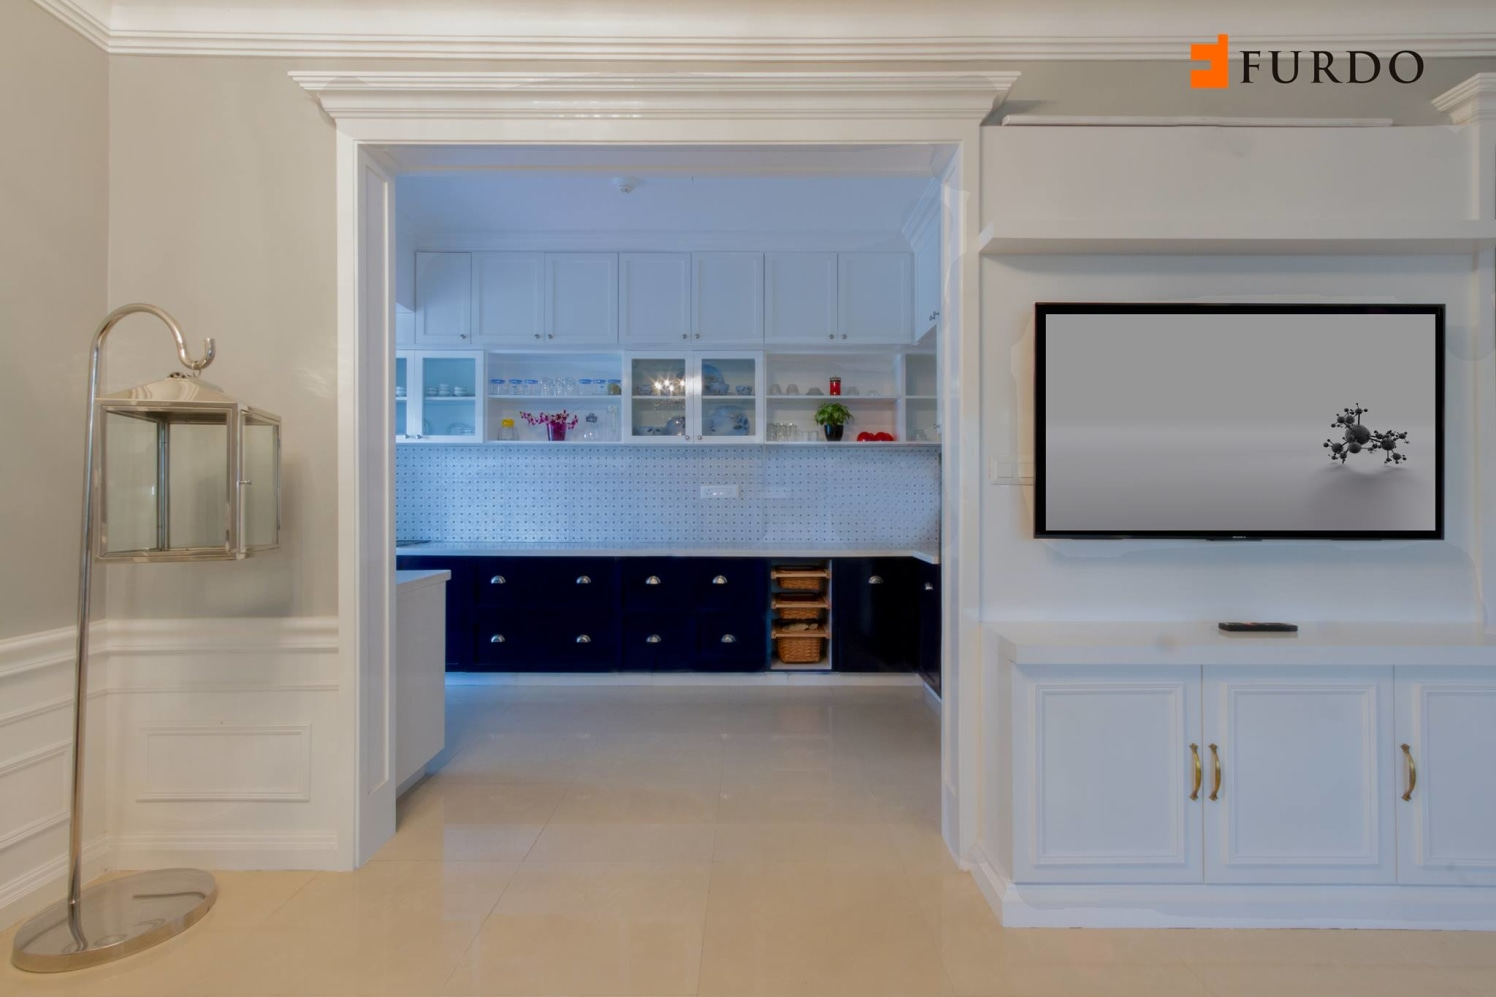 Hallway With Wooden Cabinets And Marble Flooring by Furdo.com Indoor-spaces Modern | Interior Design Photos & Ideas